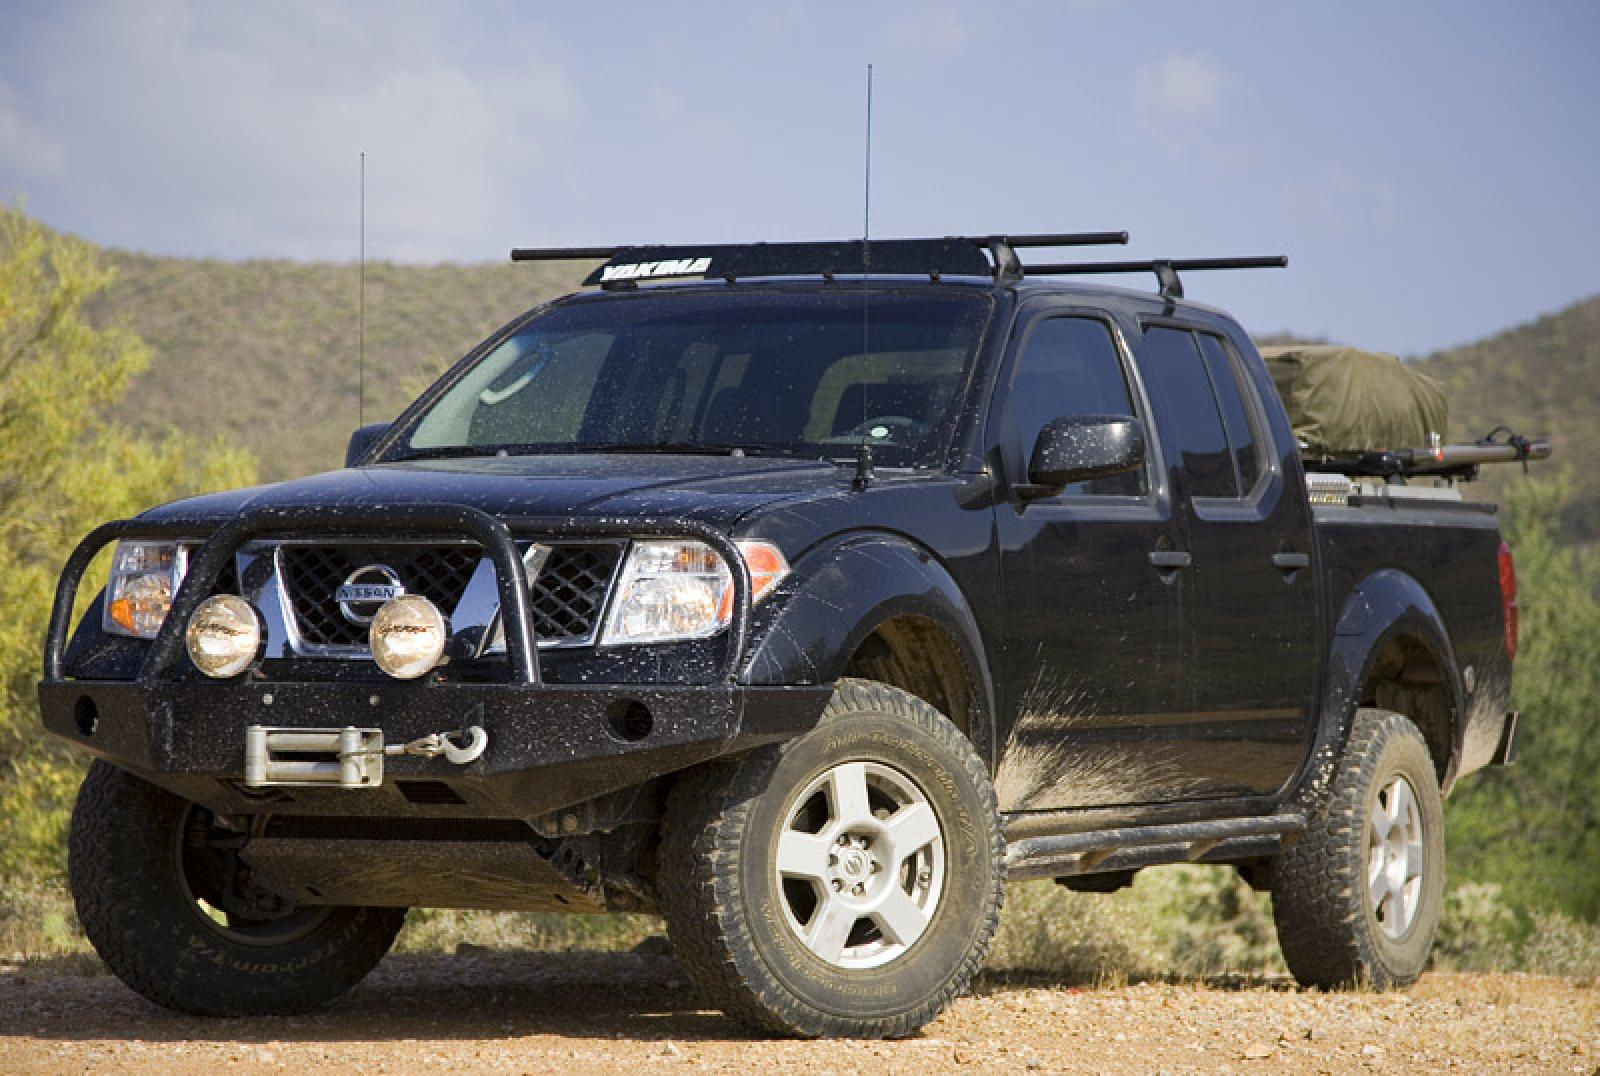 2005 nissan frontier information and photos zombiedrive. Black Bedroom Furniture Sets. Home Design Ideas